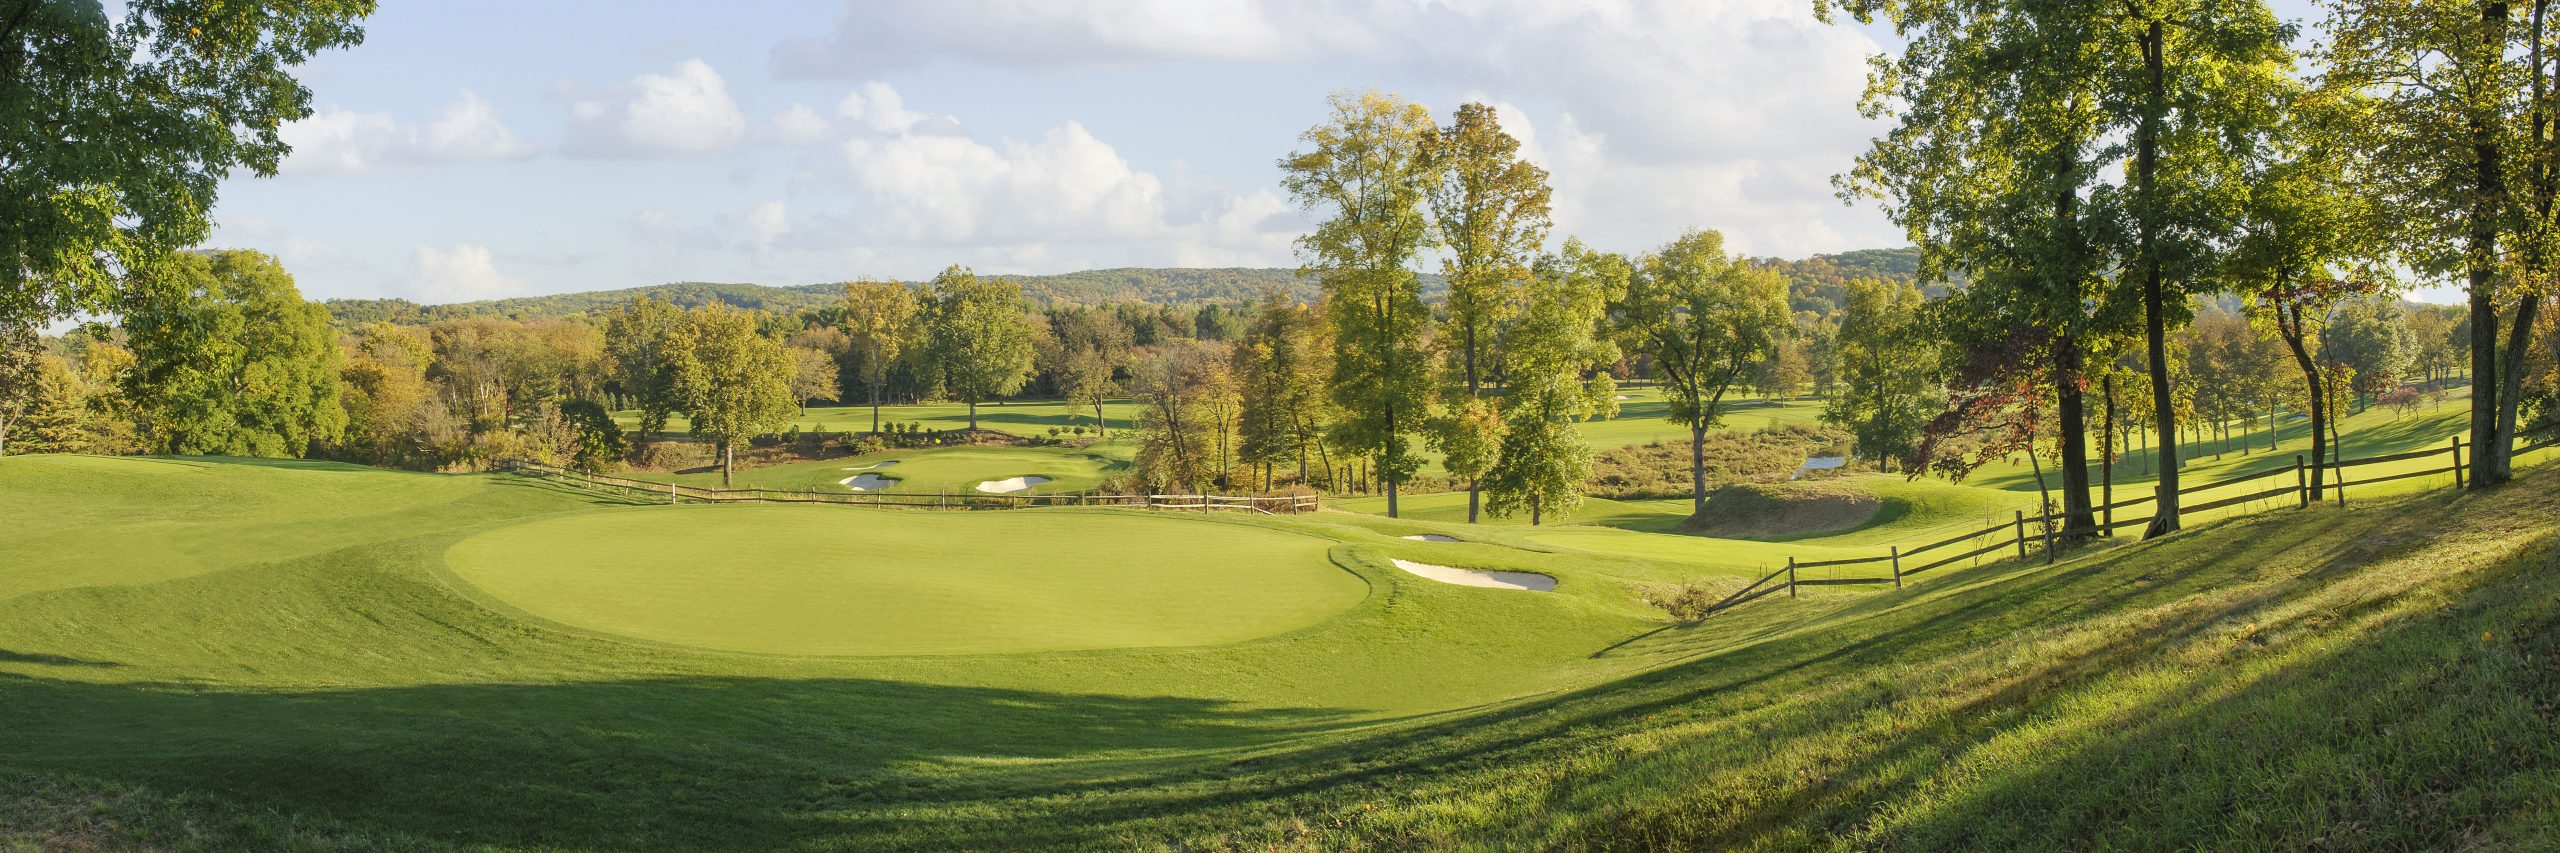 Golf Course Image - Saucon Valley Weyhill No. 15